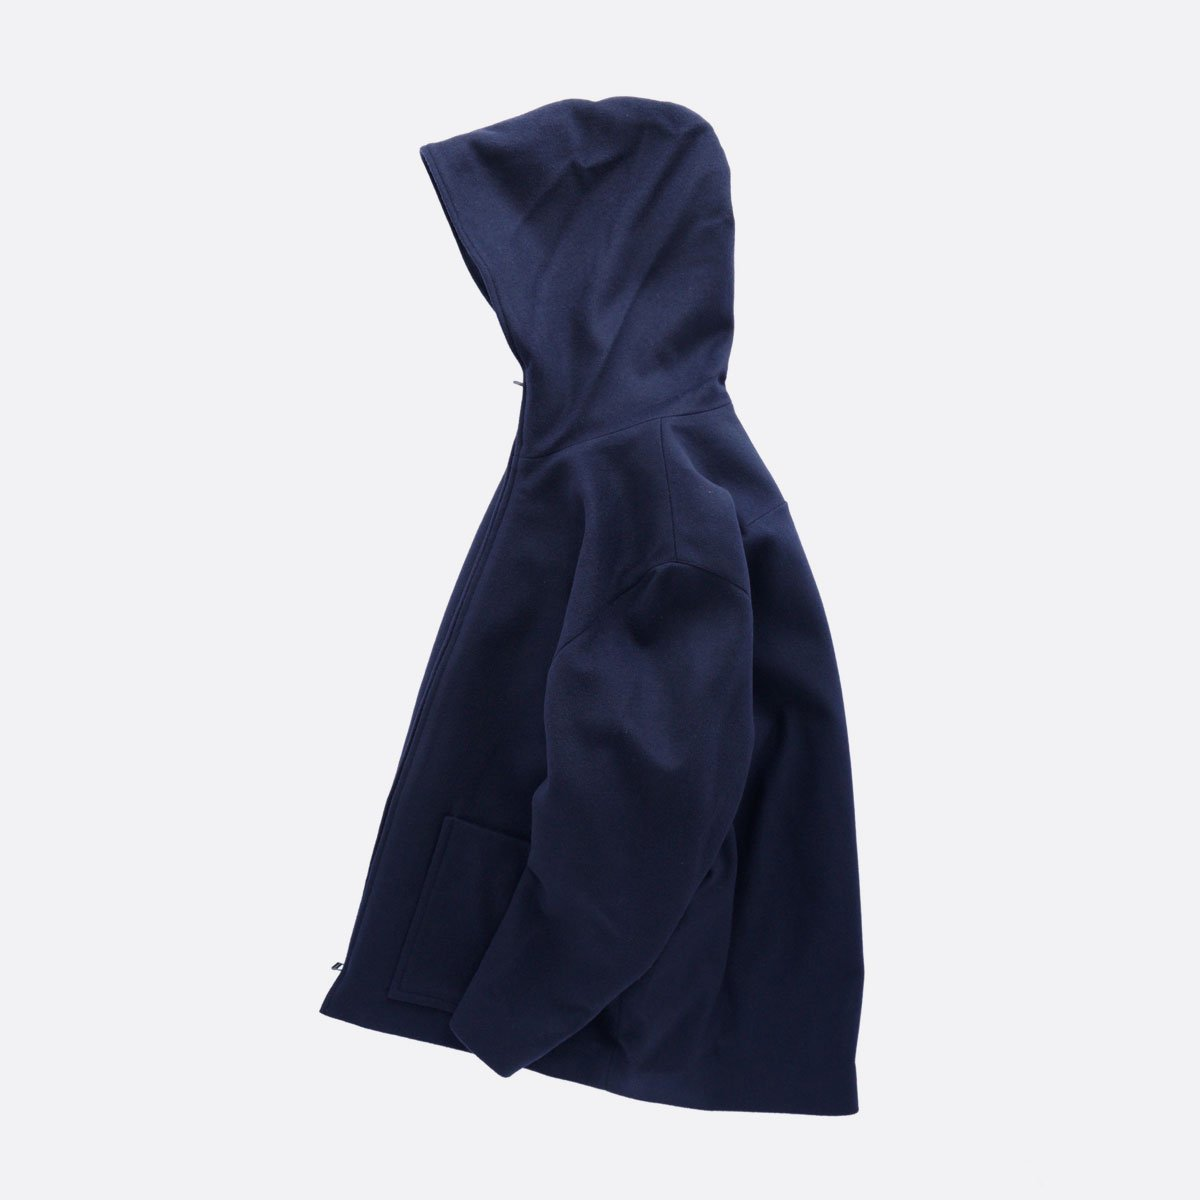 FIRMUM SUPER 100S WOOL LODEN LIKE CLOTH HOOD JACKET (NAVY)4